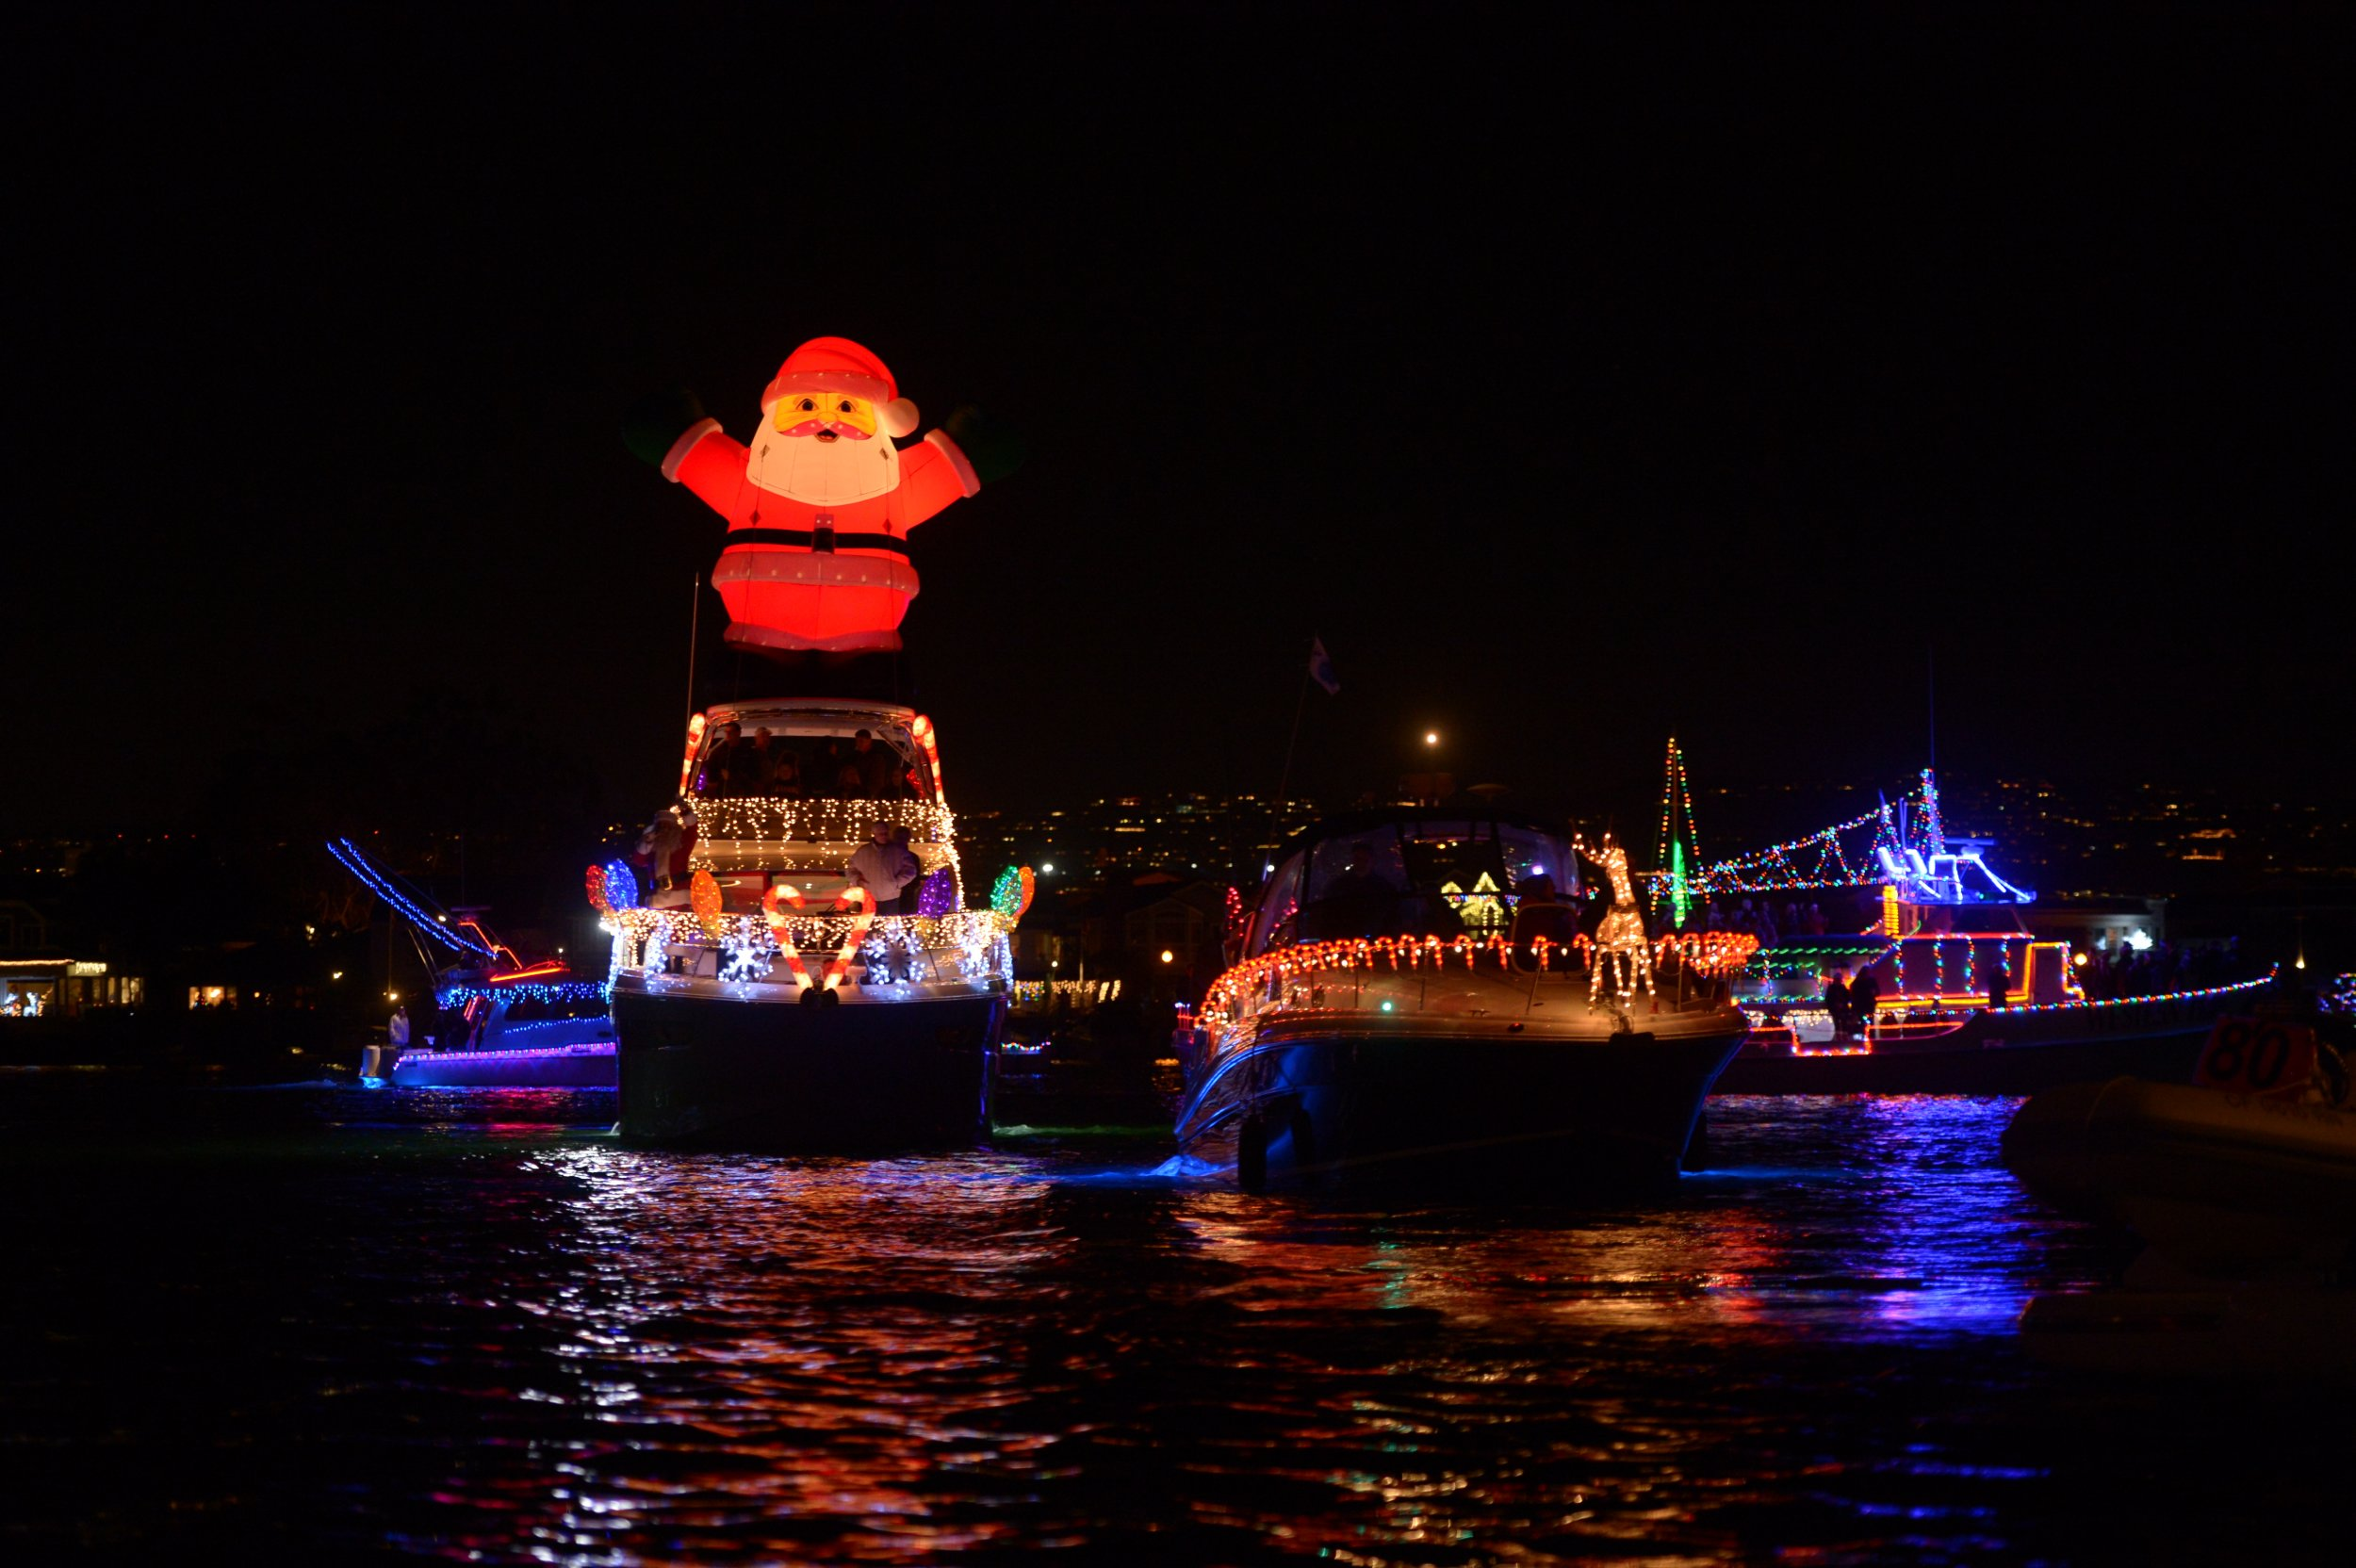 Newport Beach Christmas Lights Cruise.Photos Boat Parades Light Up The Seas With Holiday Cheer